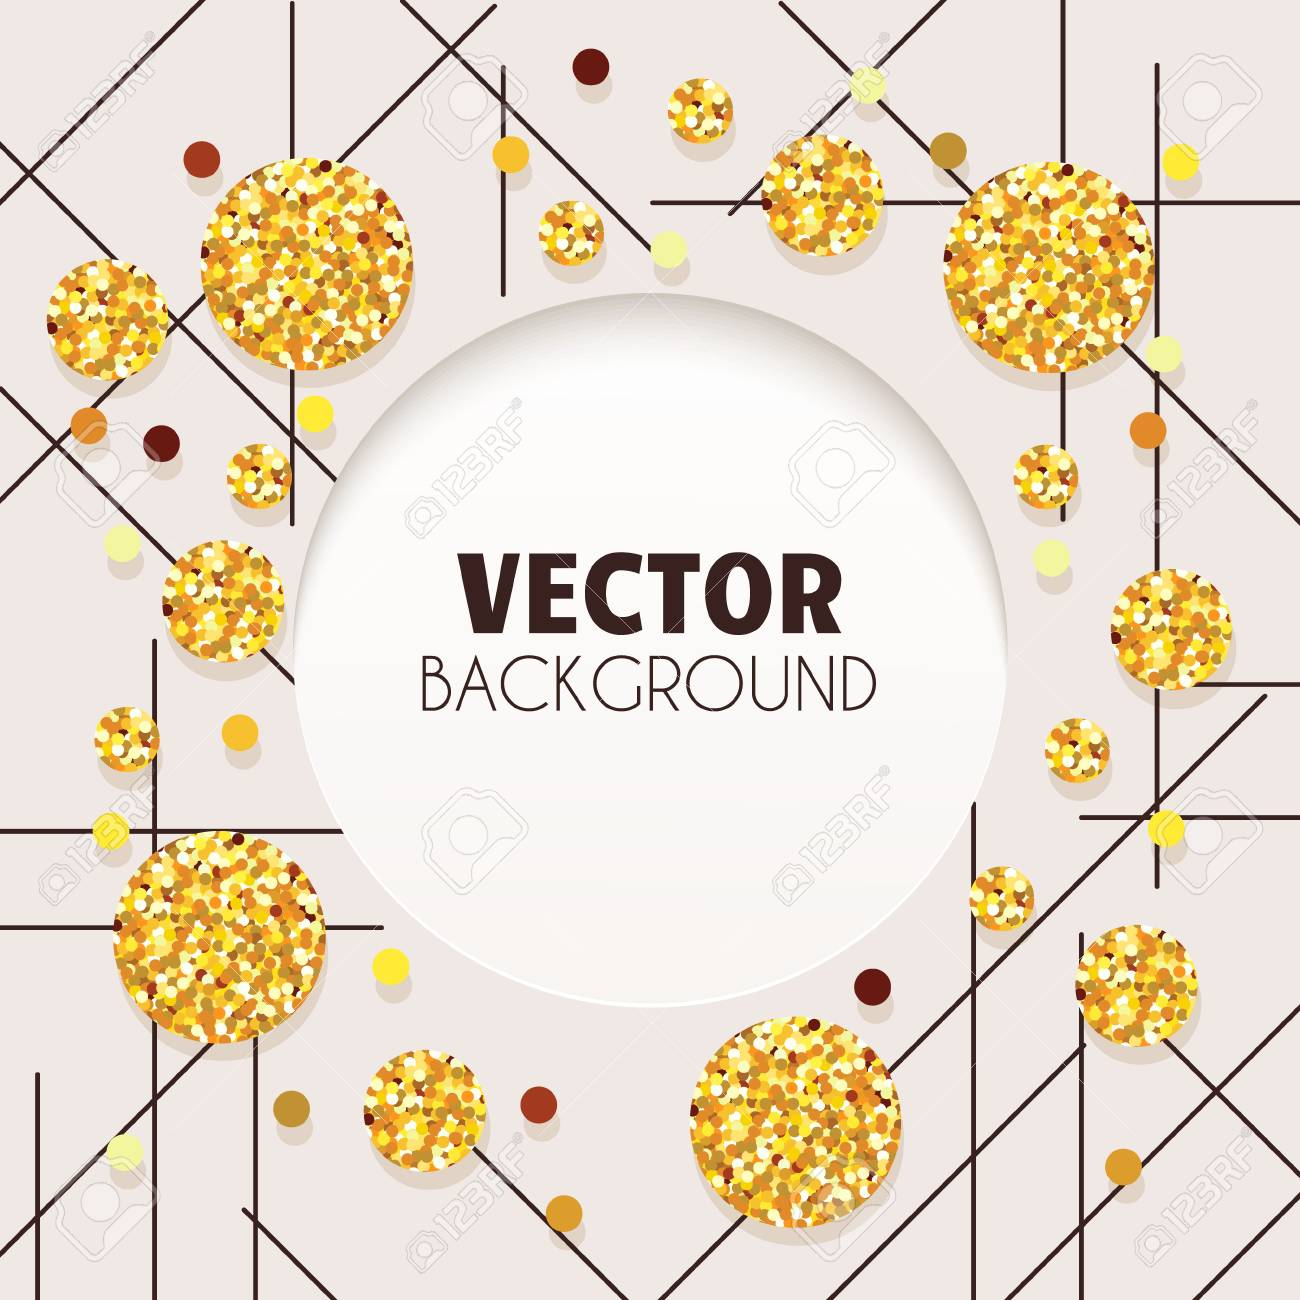 Stylish Card With Geometric Designs Golden Circles And Lines Wedding